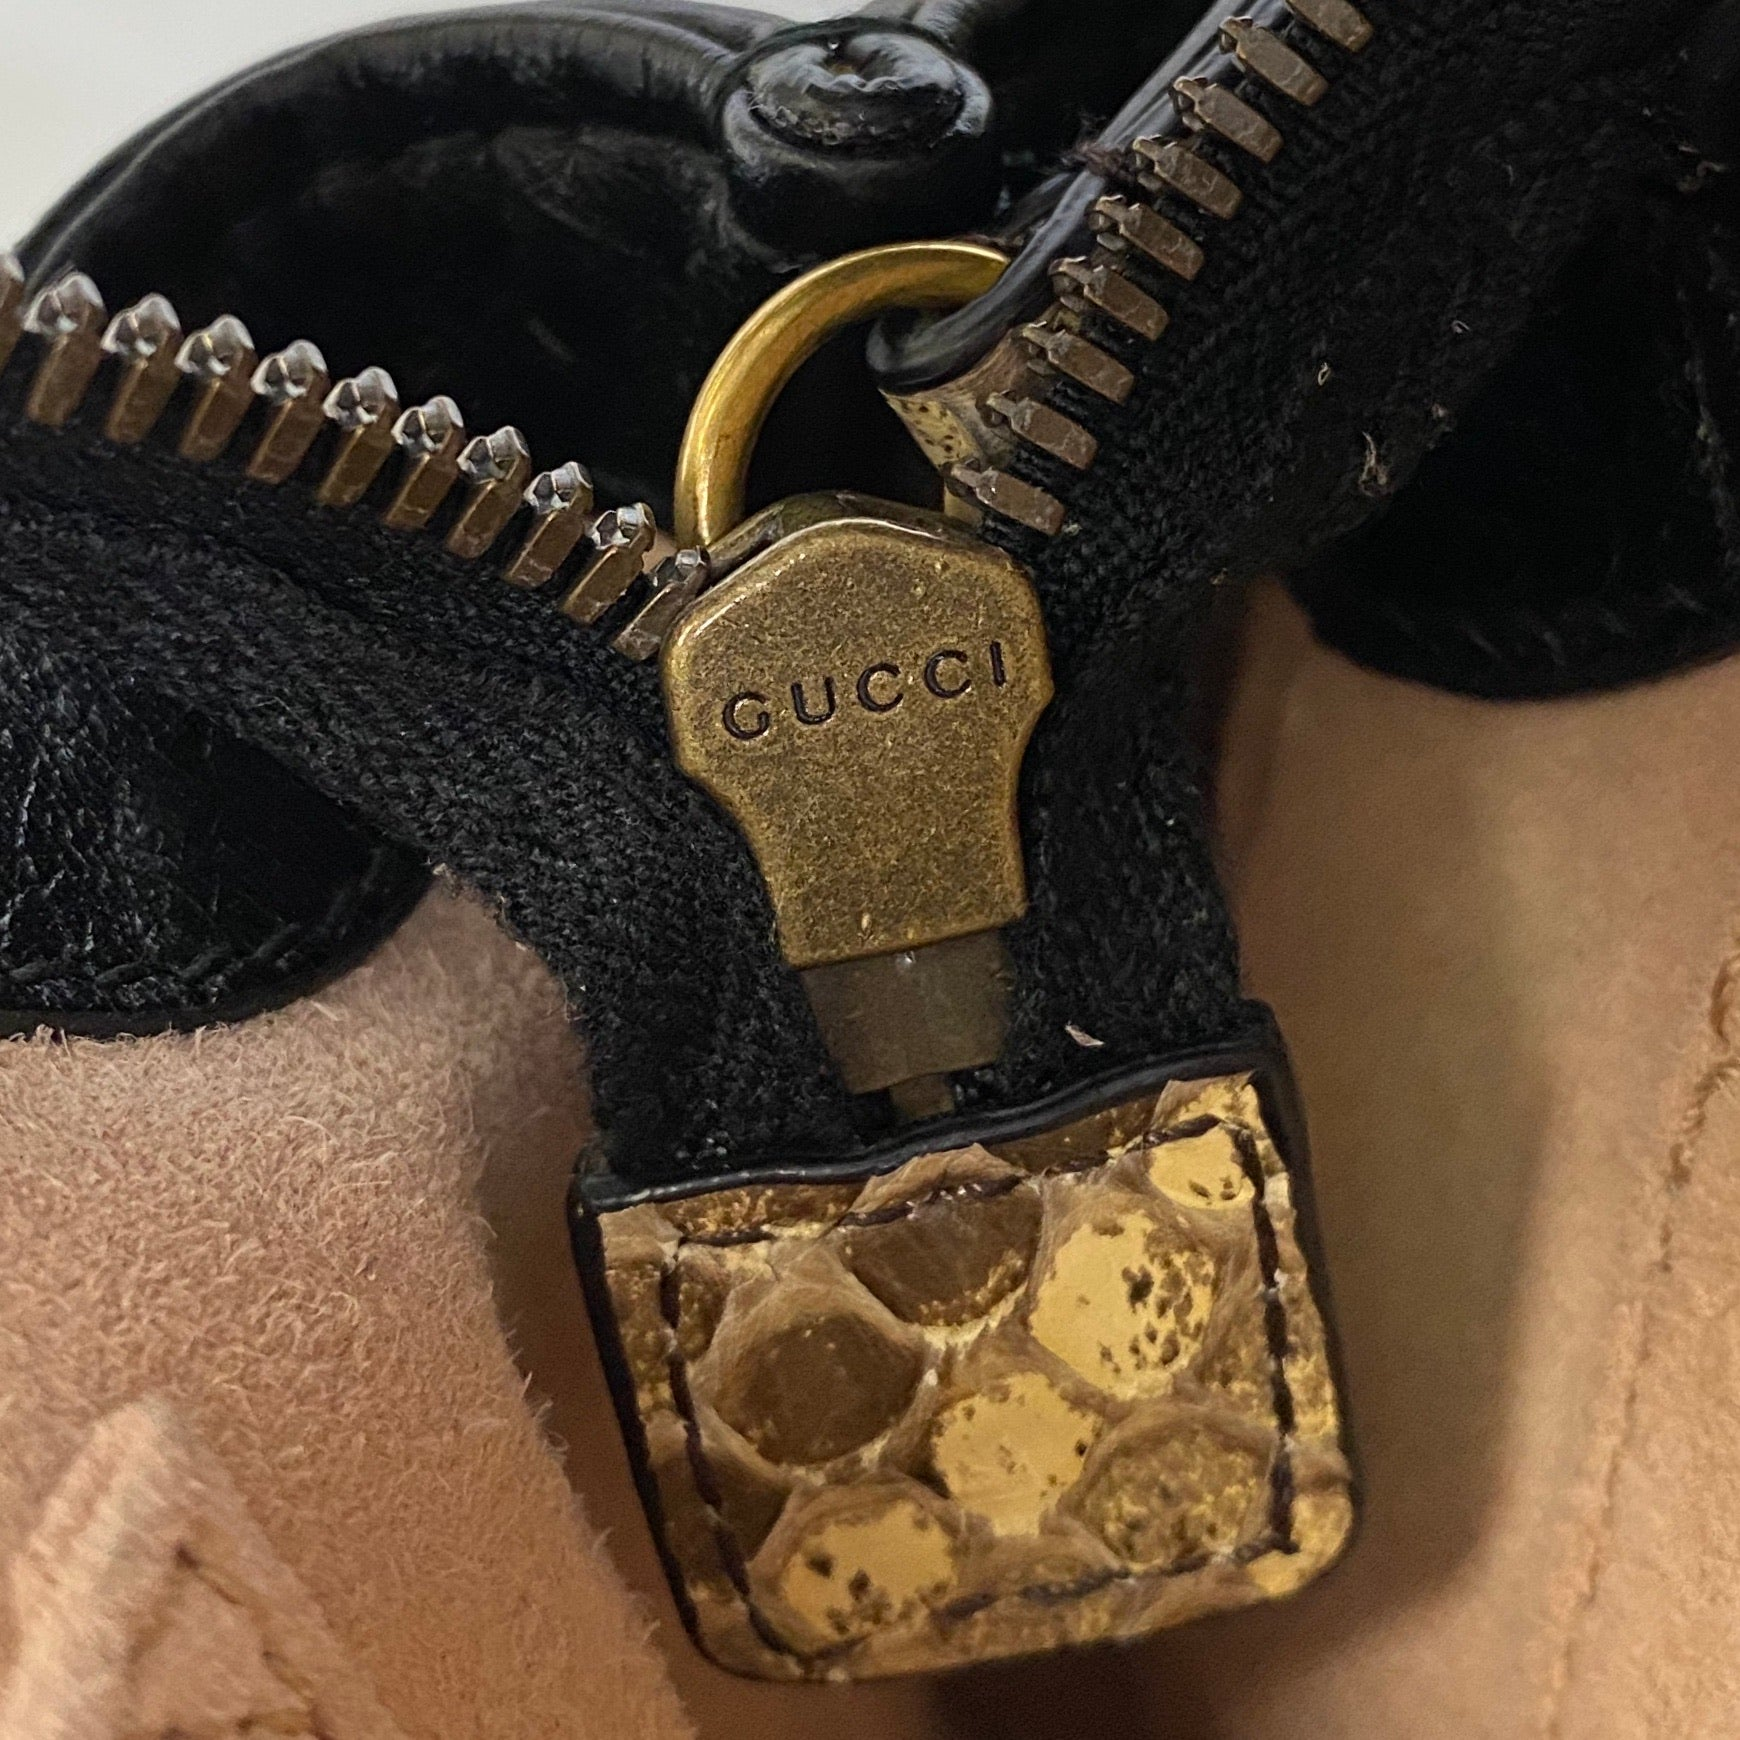 Gucci Small Python Re(Belle) Bag